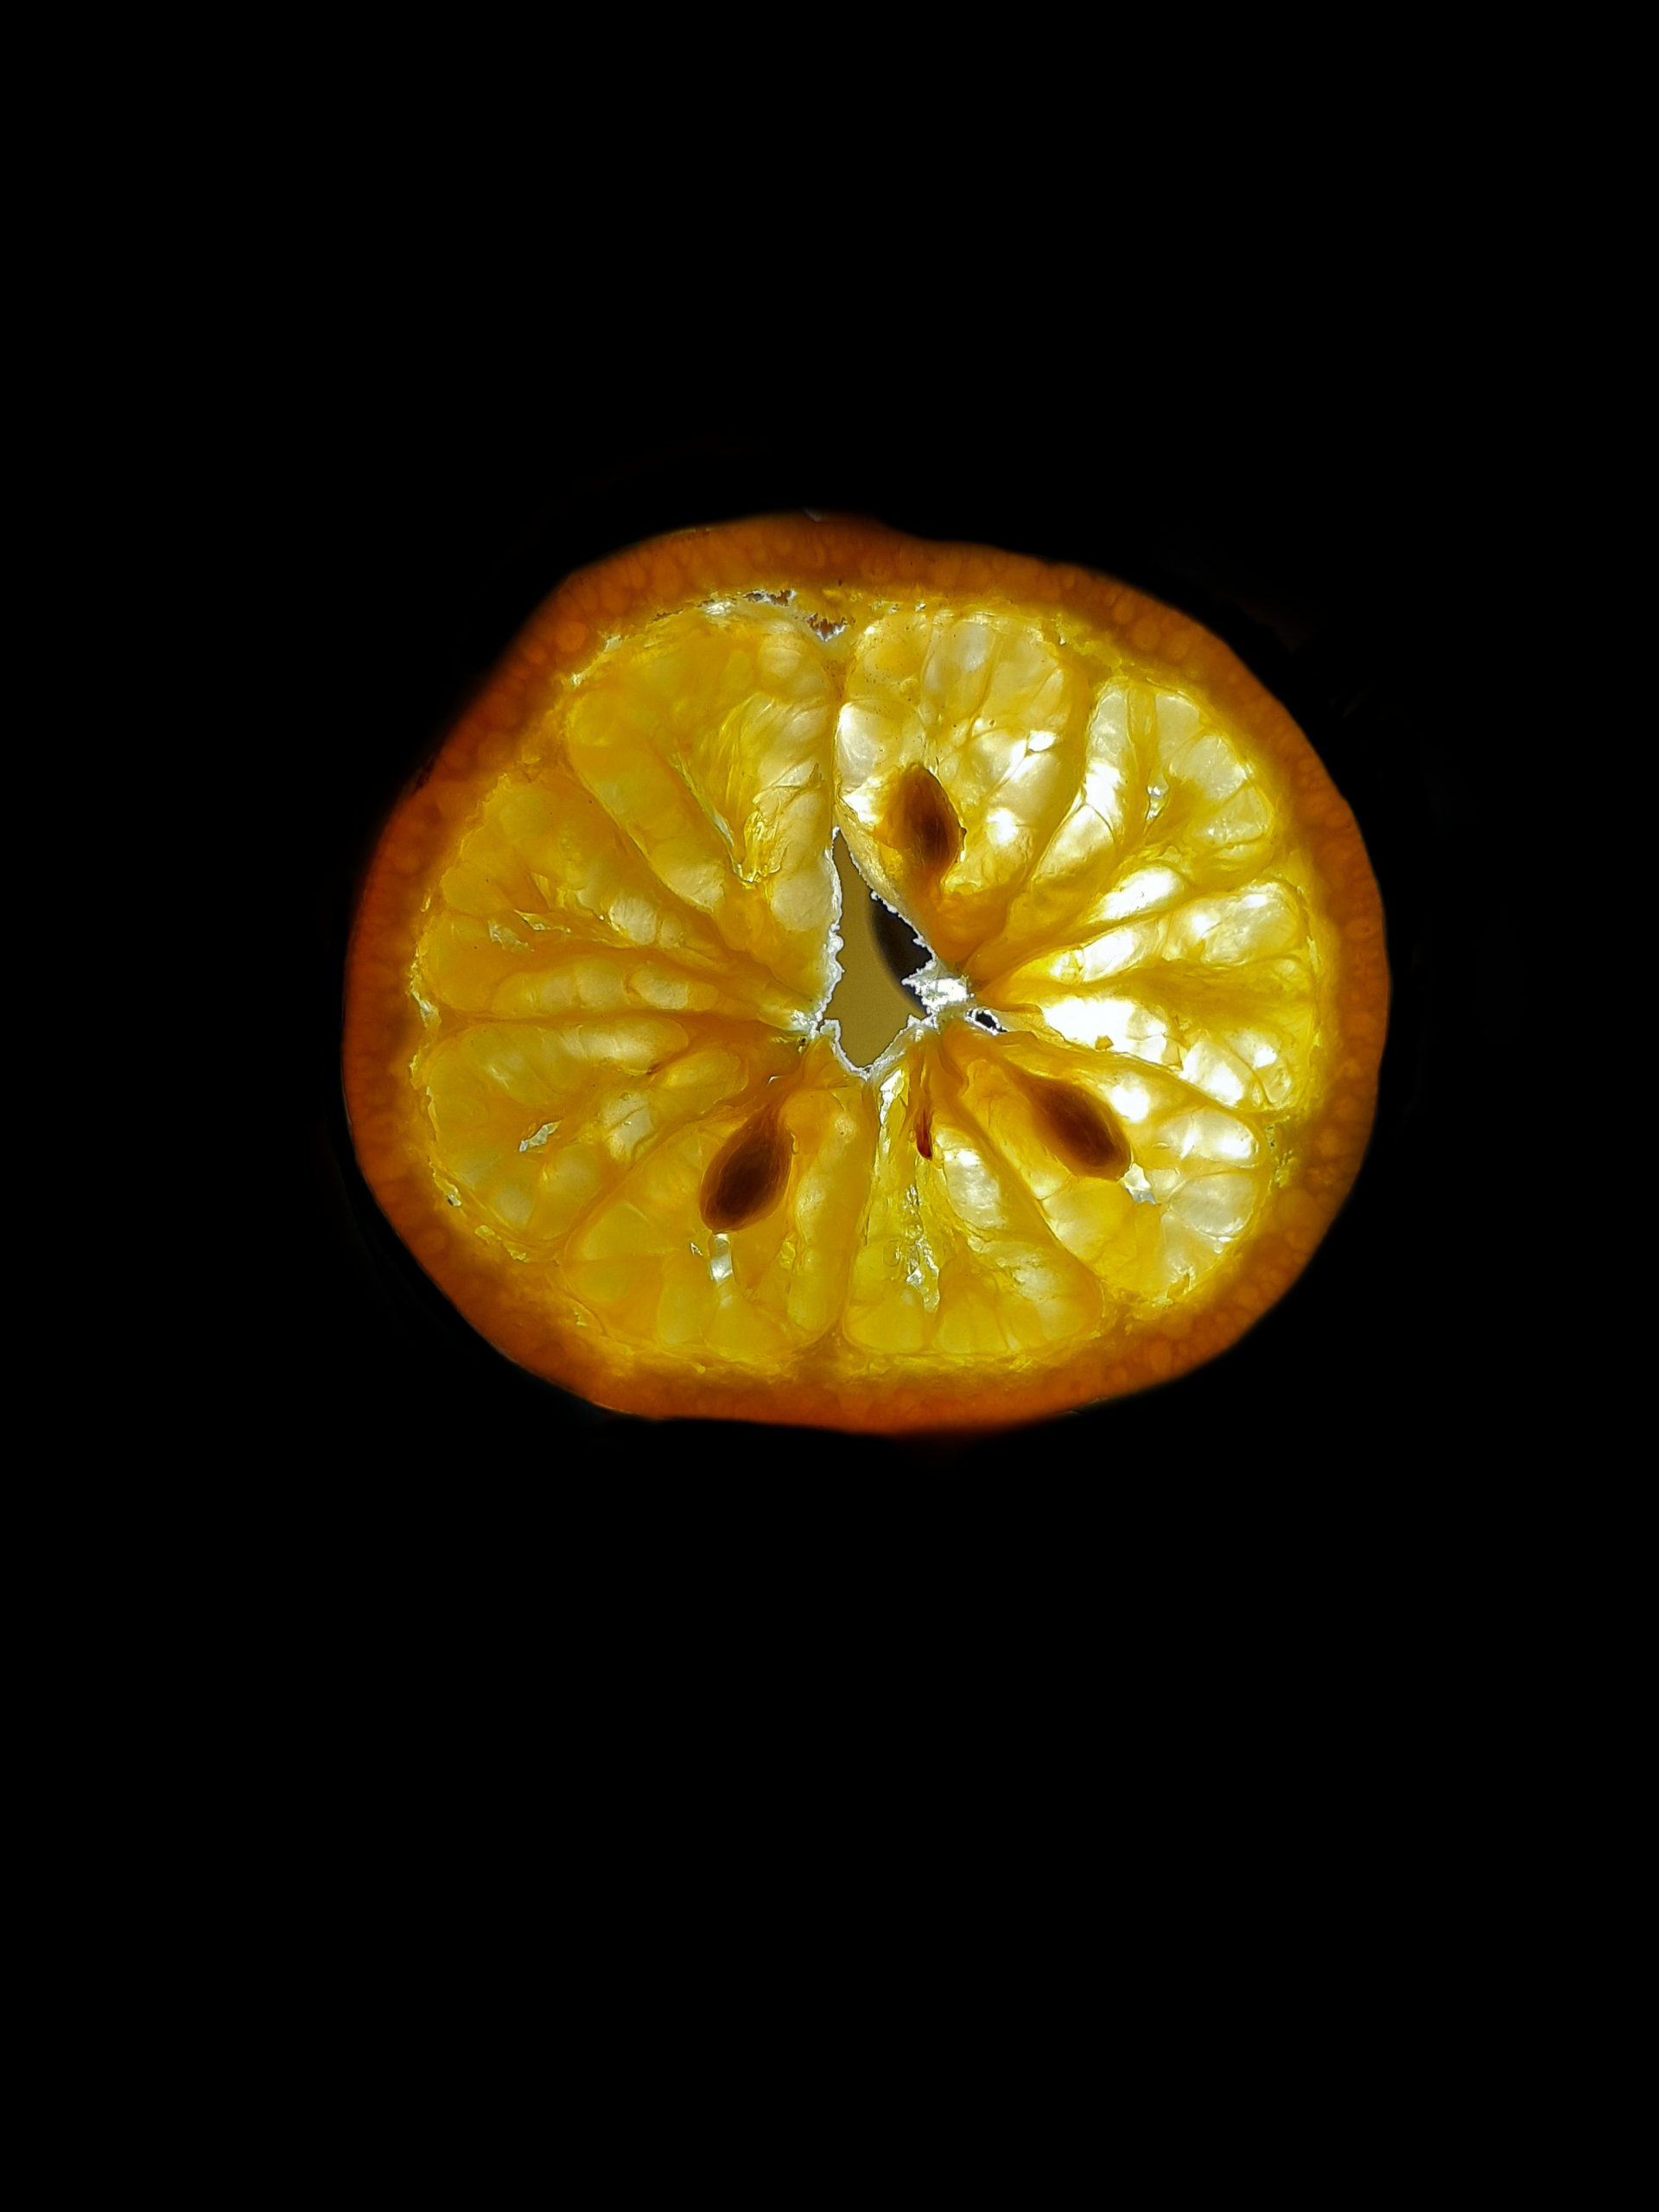 An orange slice